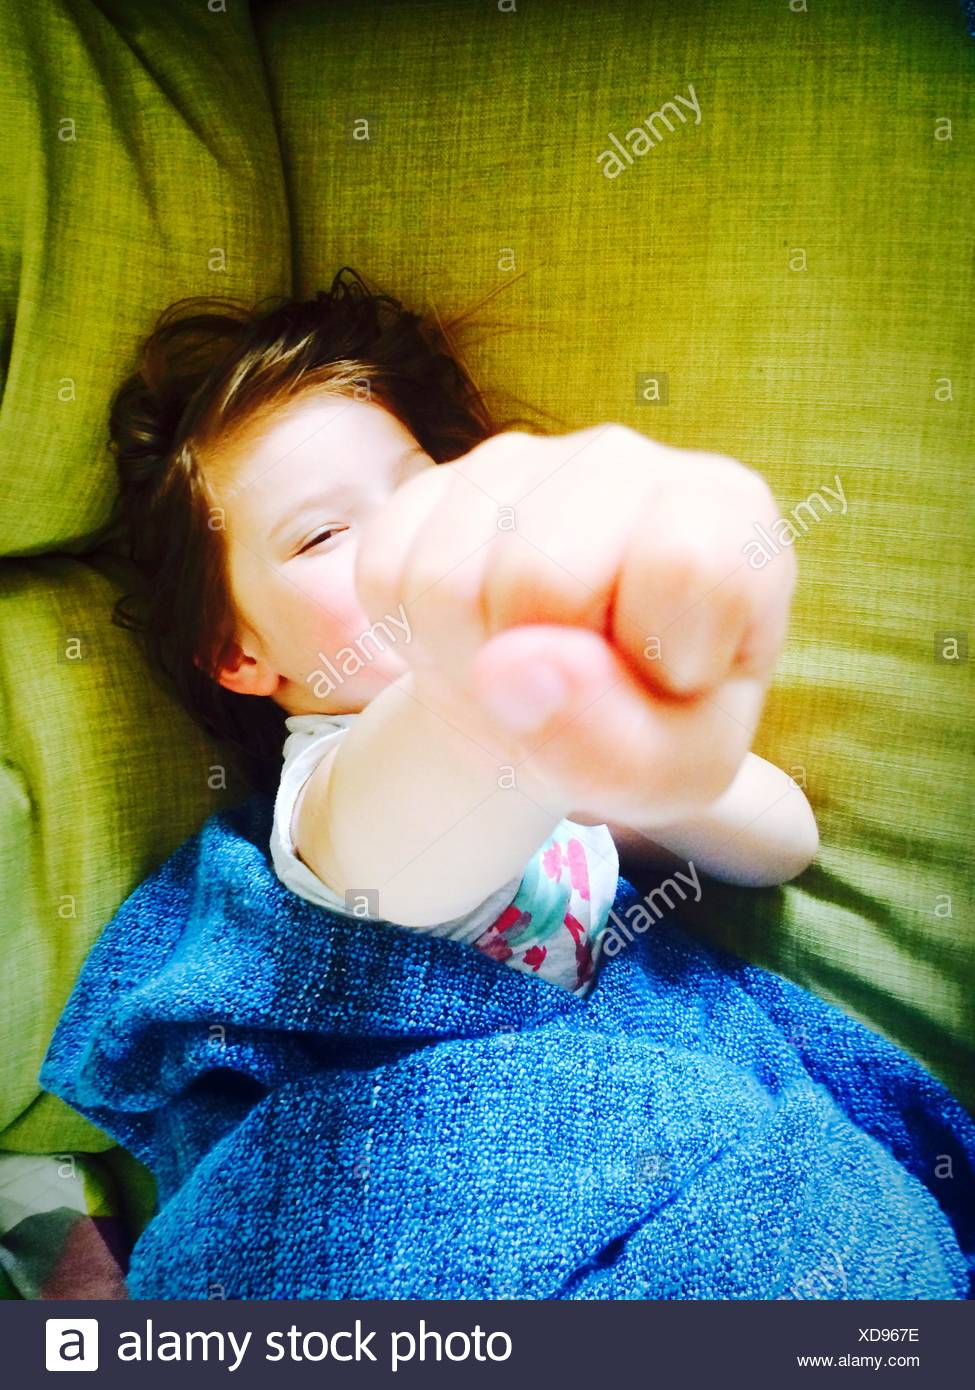 Portrait Of Girl Showing Fist While Relaxing On Bed - Stock Image